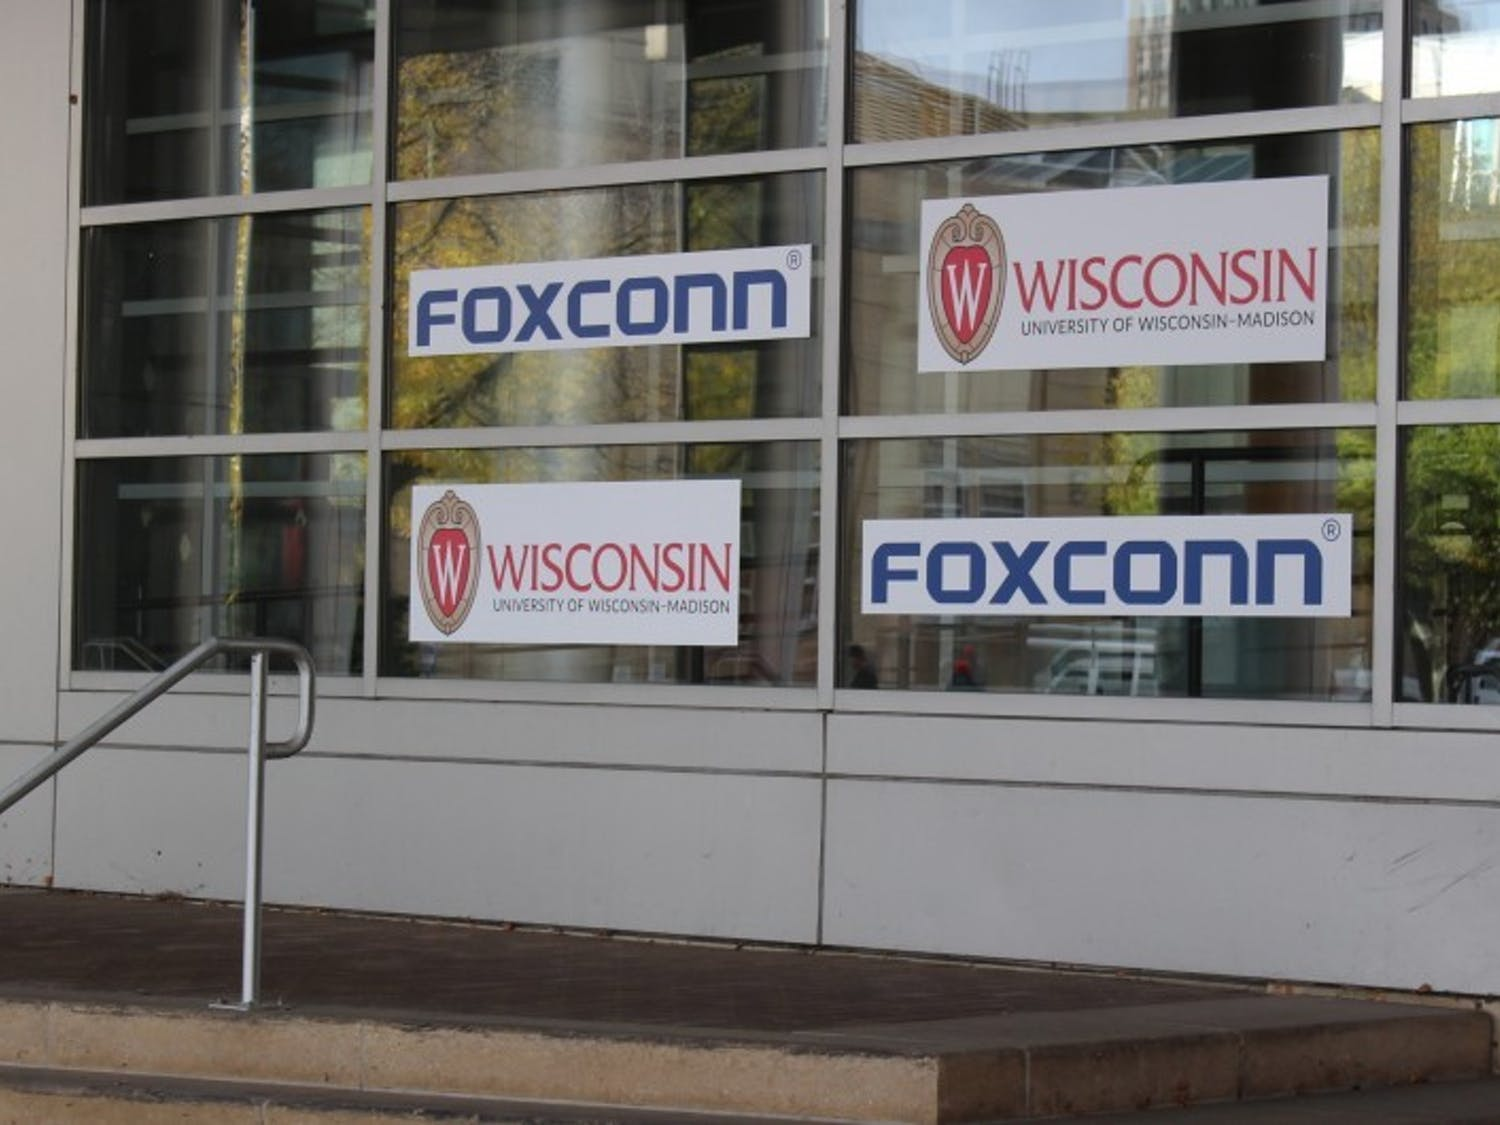 In August 2018, Foxconn pledged to invest $100 million in research and an engineering facility at UW-Madison, but the university reported only receiving $70,000 so far.